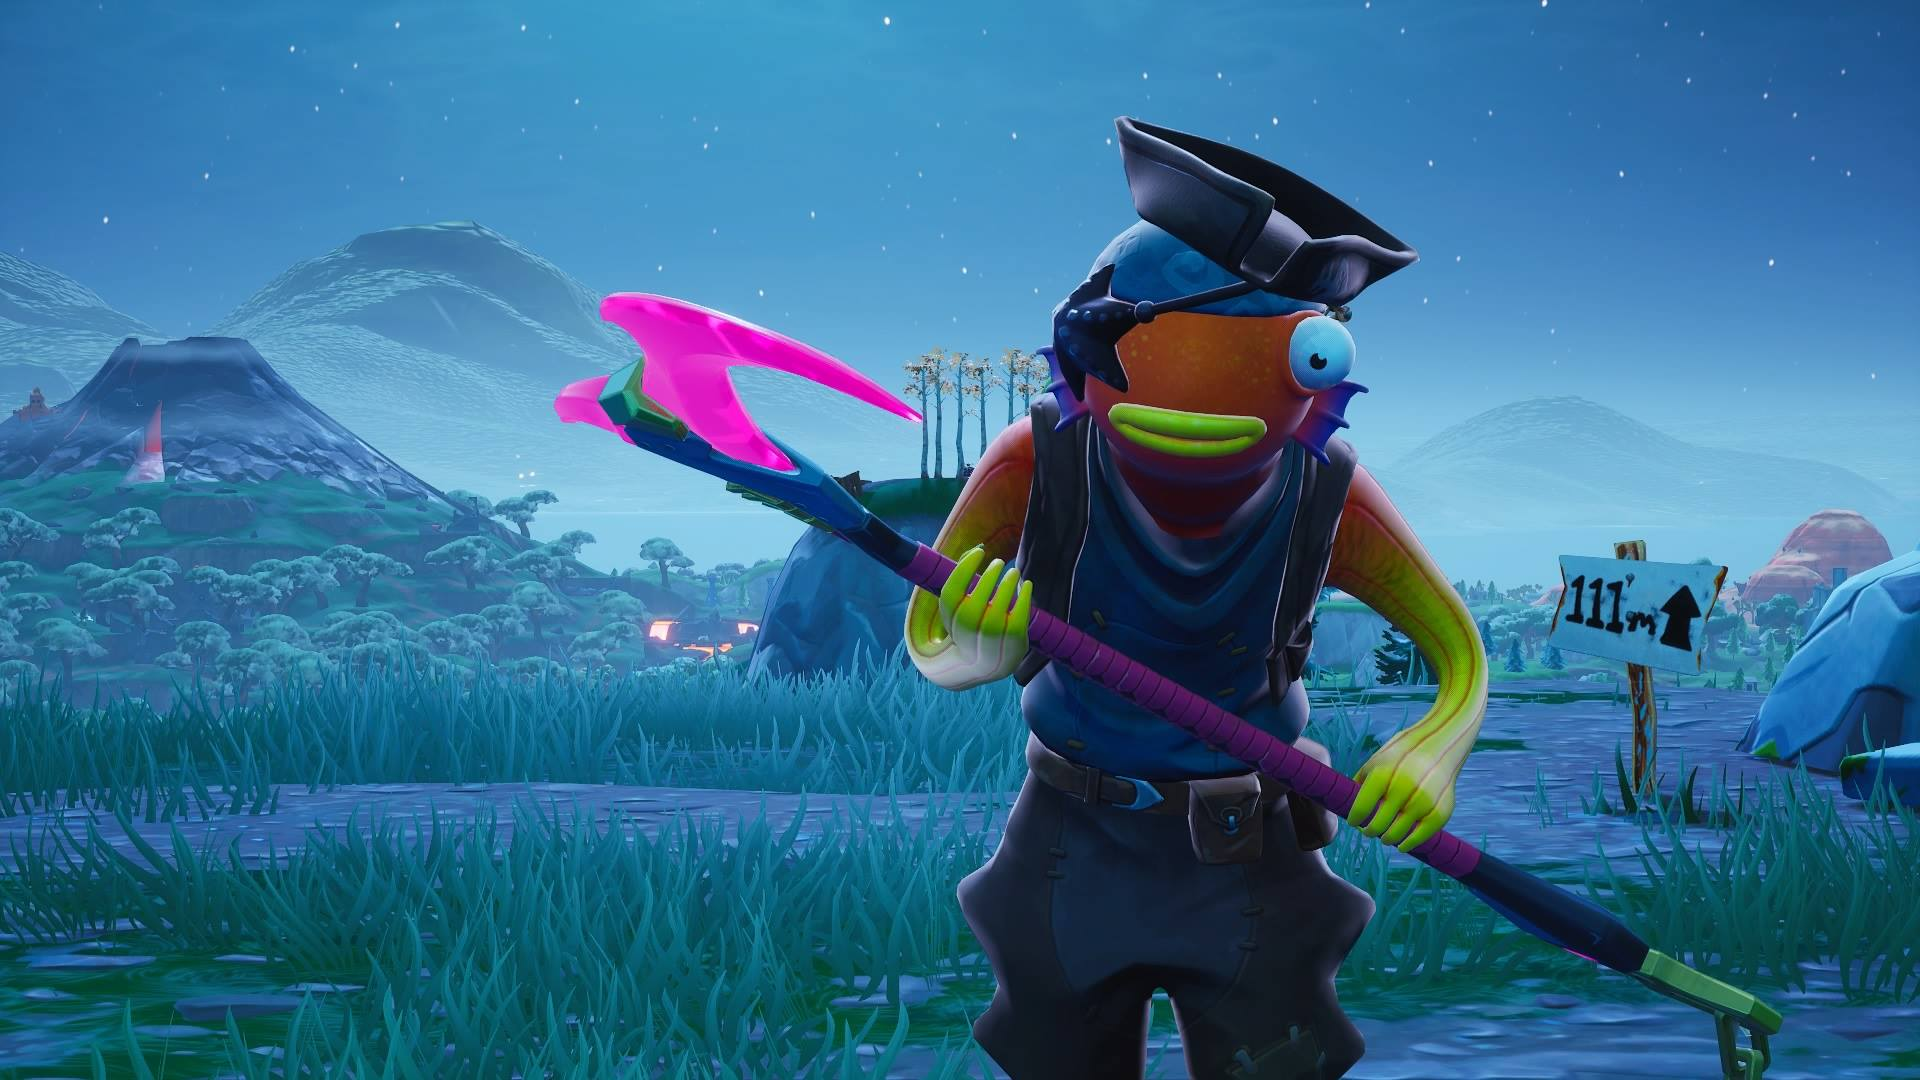 Fortnite 5 Highest Elevations Locations Where To Find The Tallest